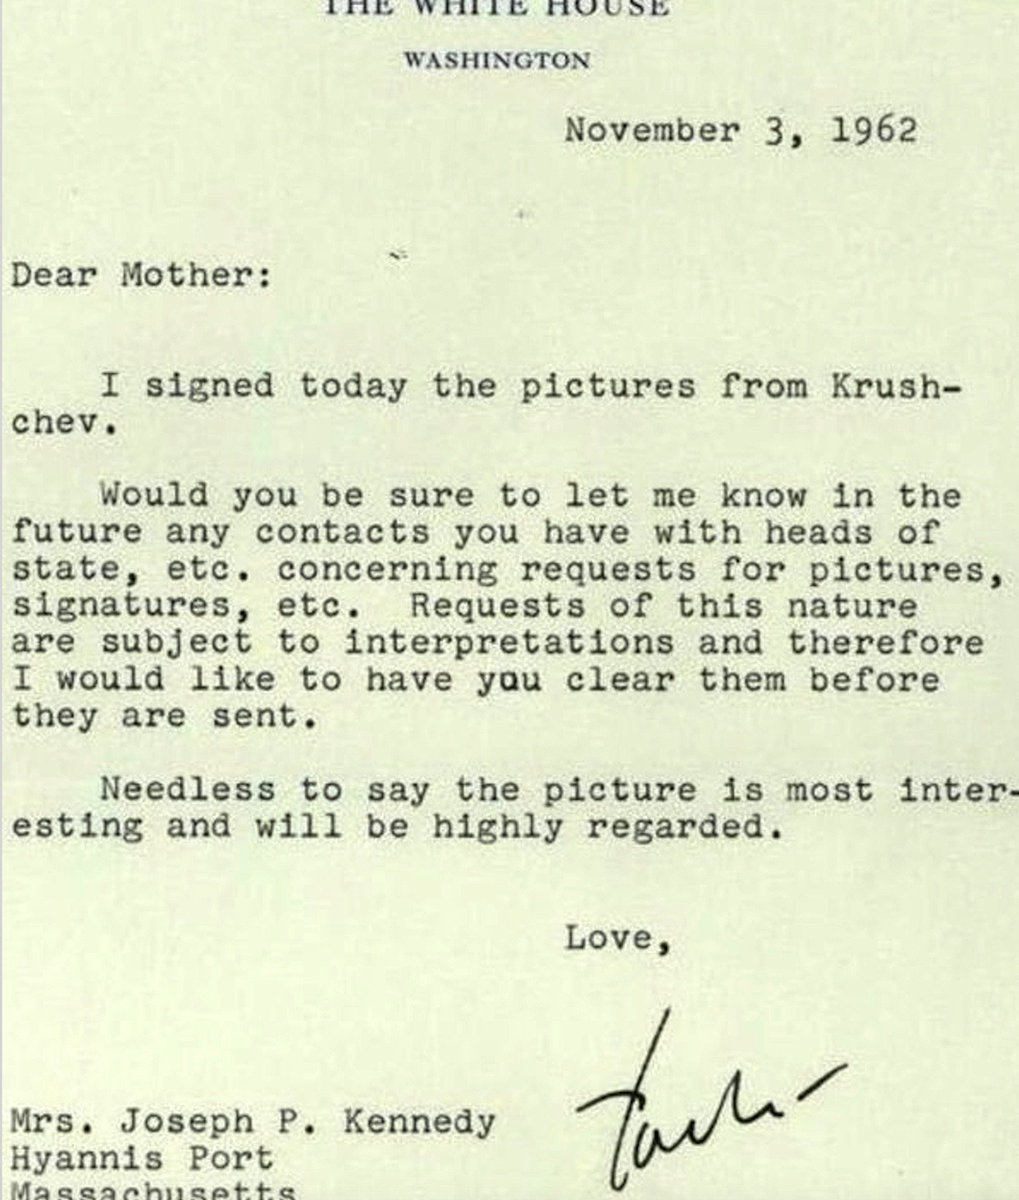 JFK asks his Mother (after Cuban Missile Crisis) not to contact Nikita Khrushchev again without asking him first: